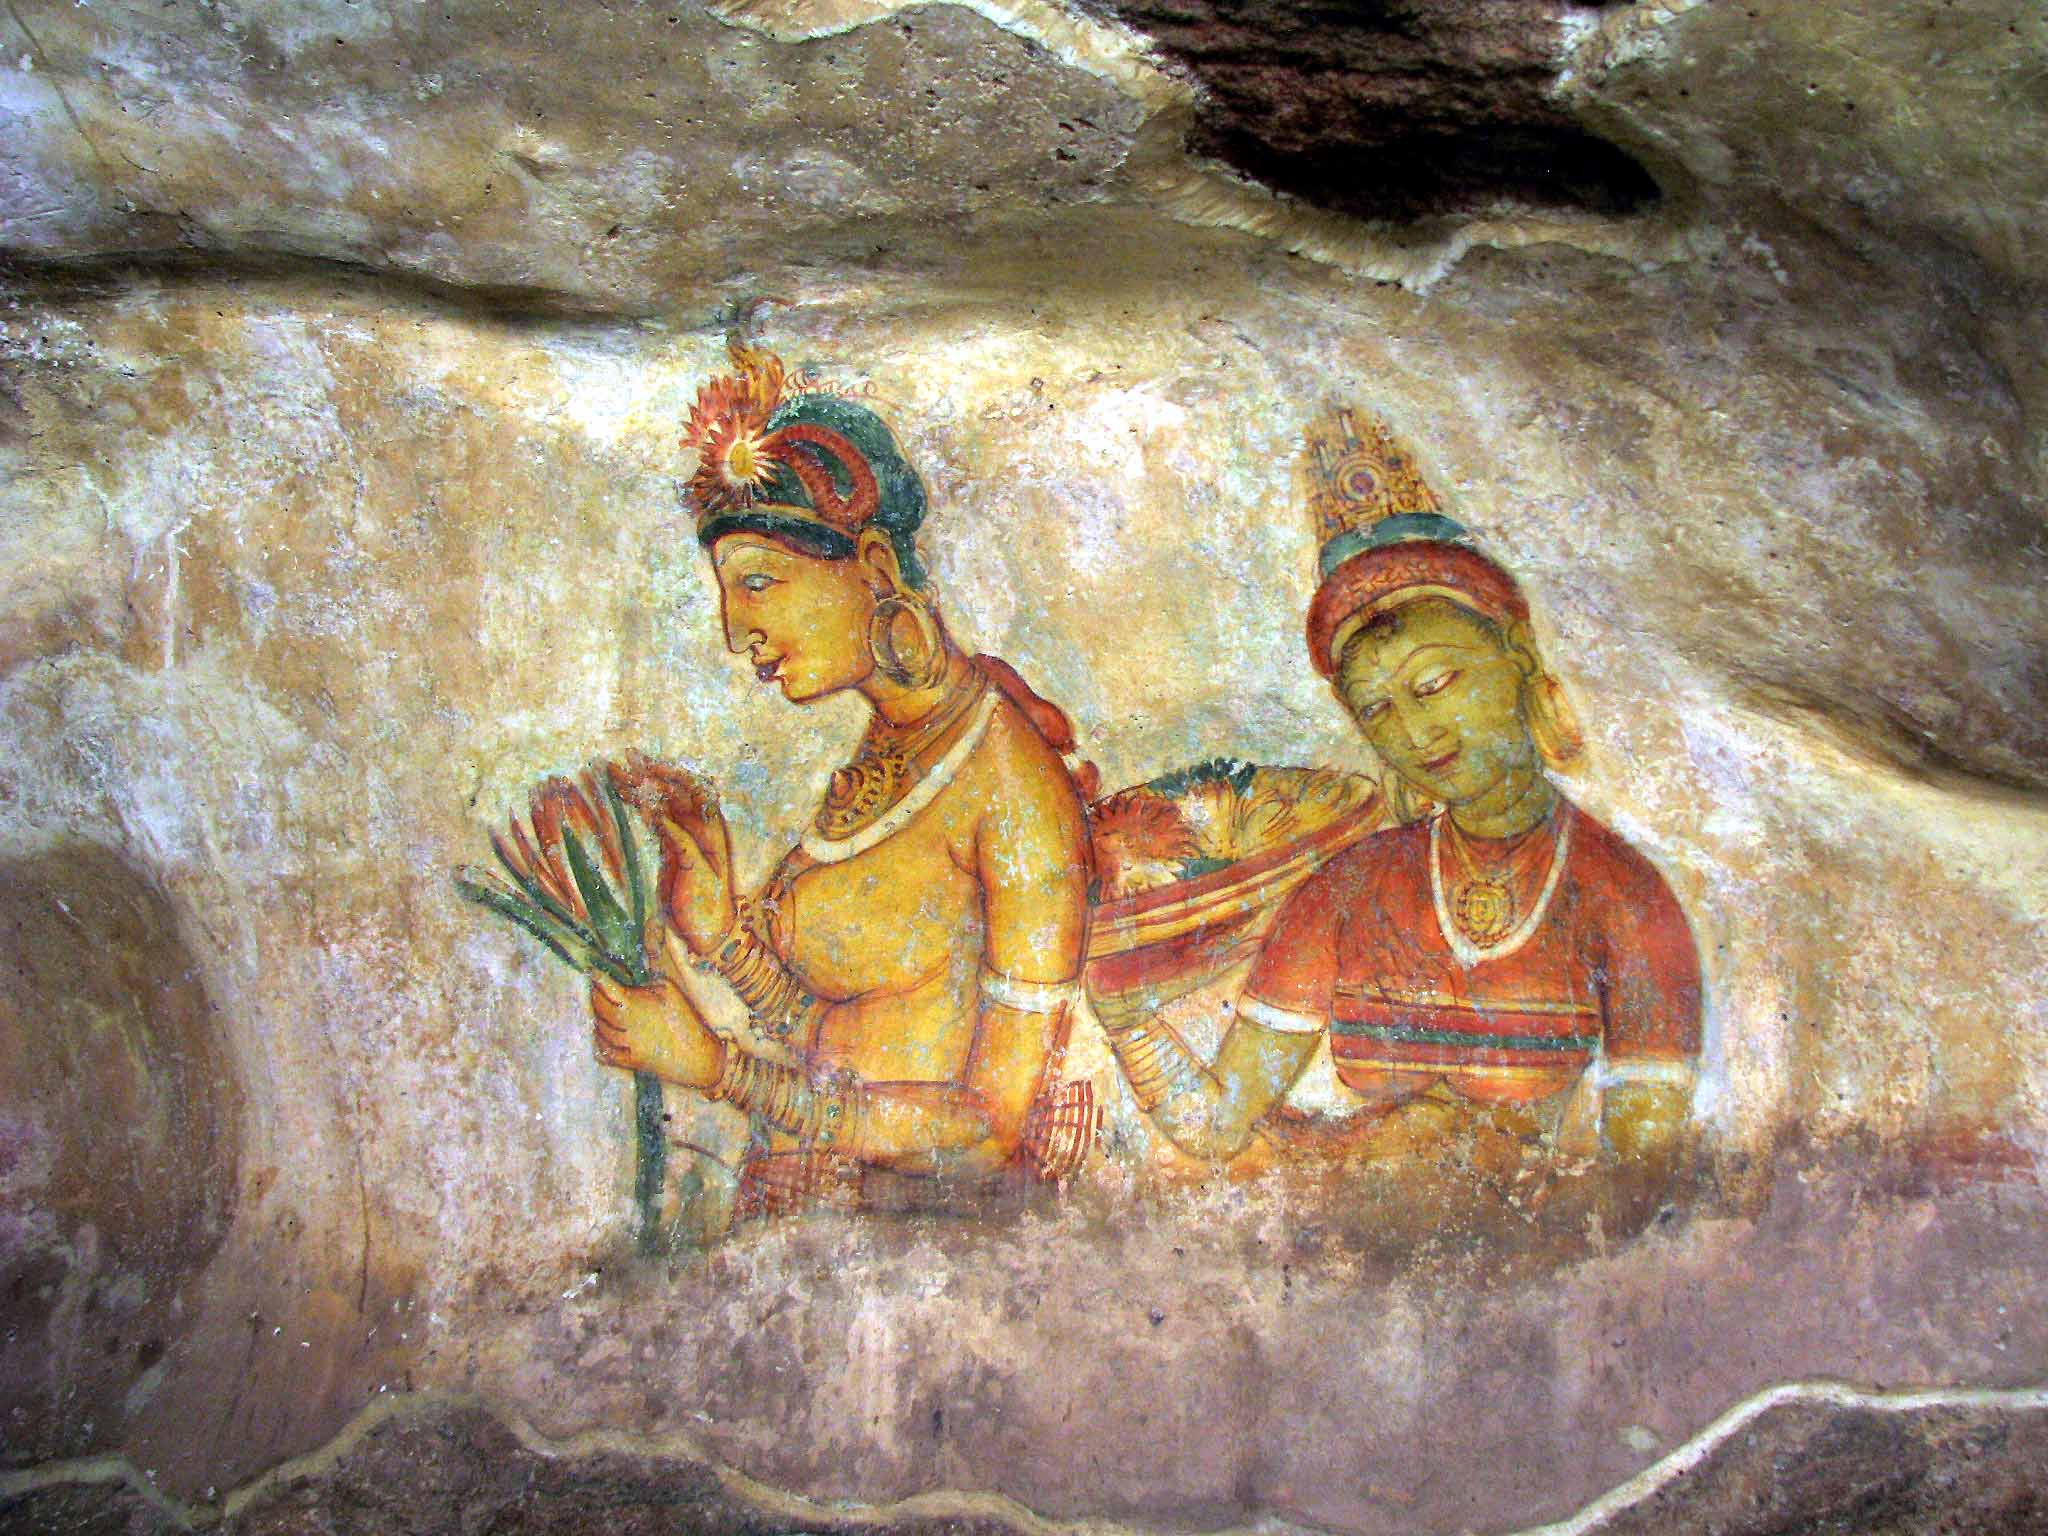 heritage-lions-rock-sigiriya-paintings-sri-lanka